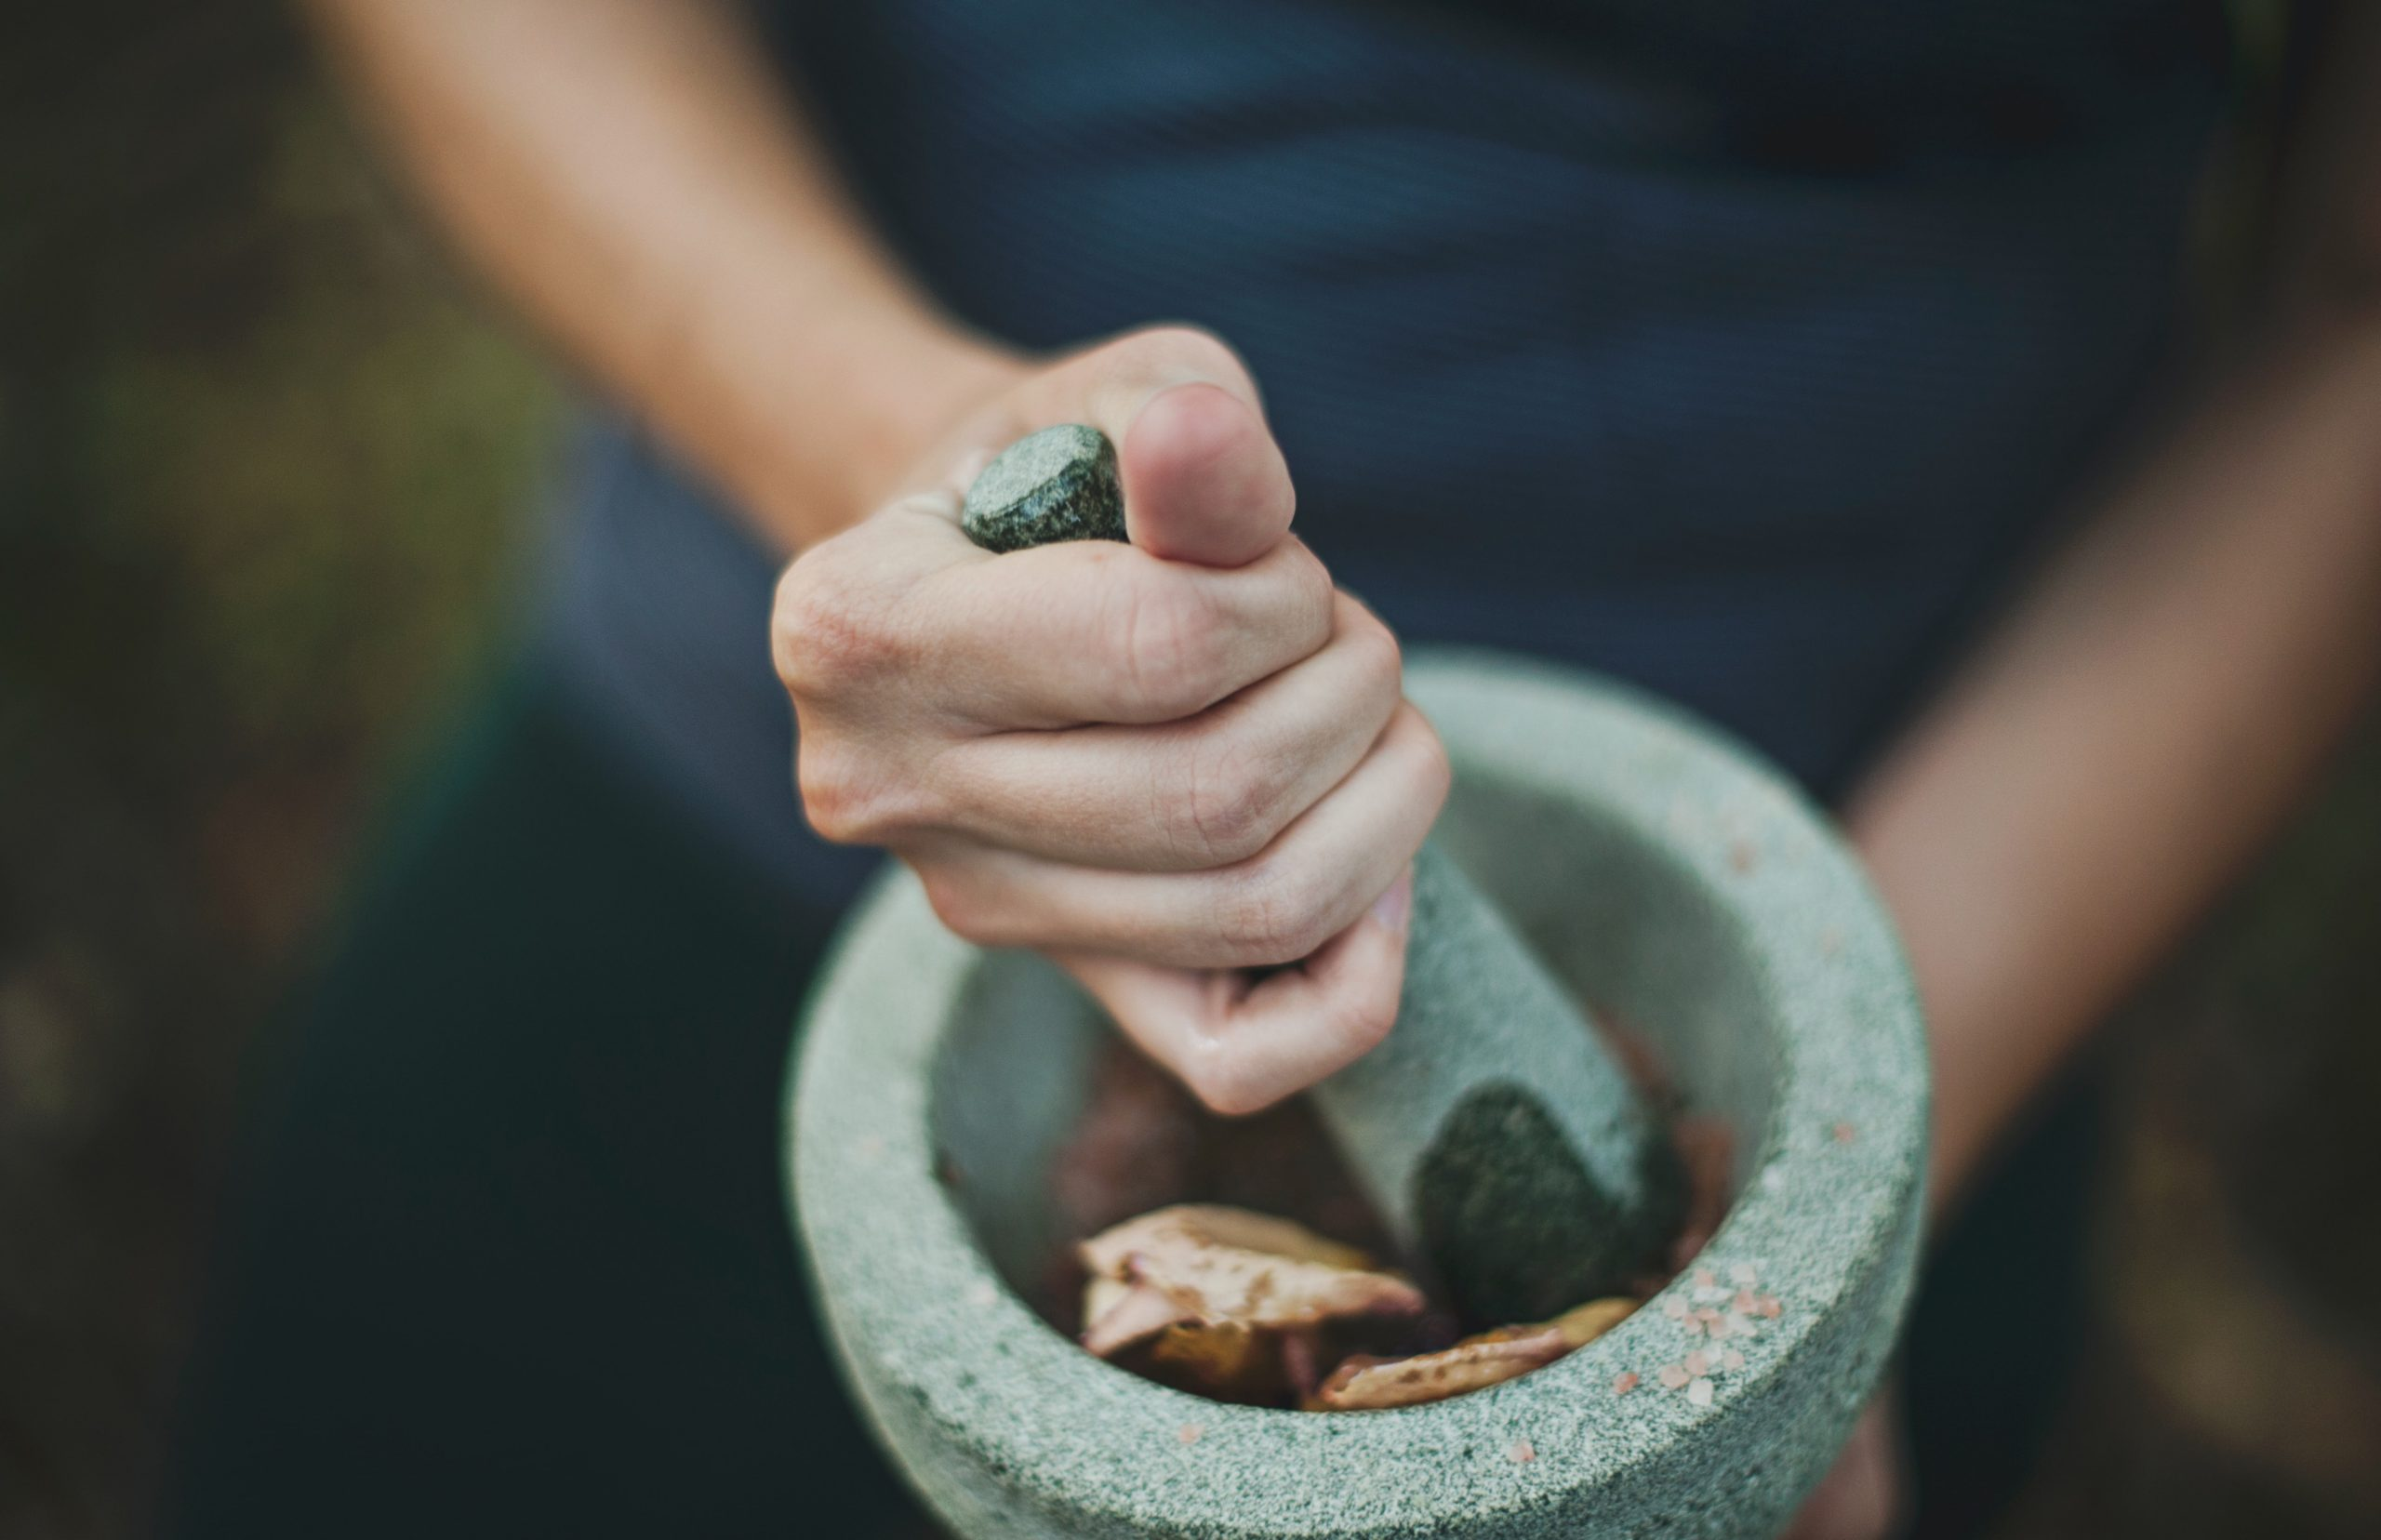 woman working on a herbal remedy on a morter